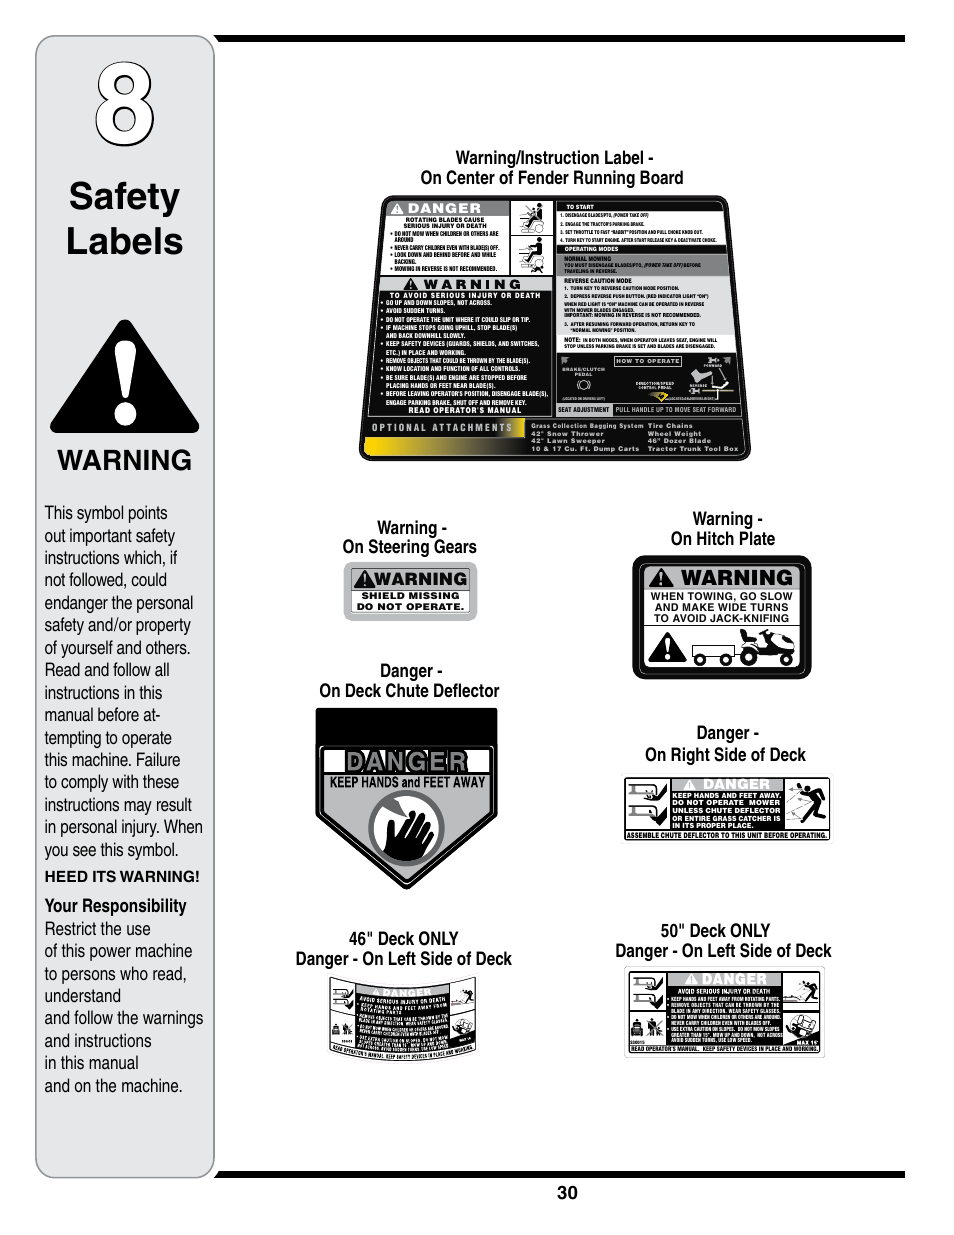 Safety labels, Warning, Danger - on right side of deck | Cub Cadet